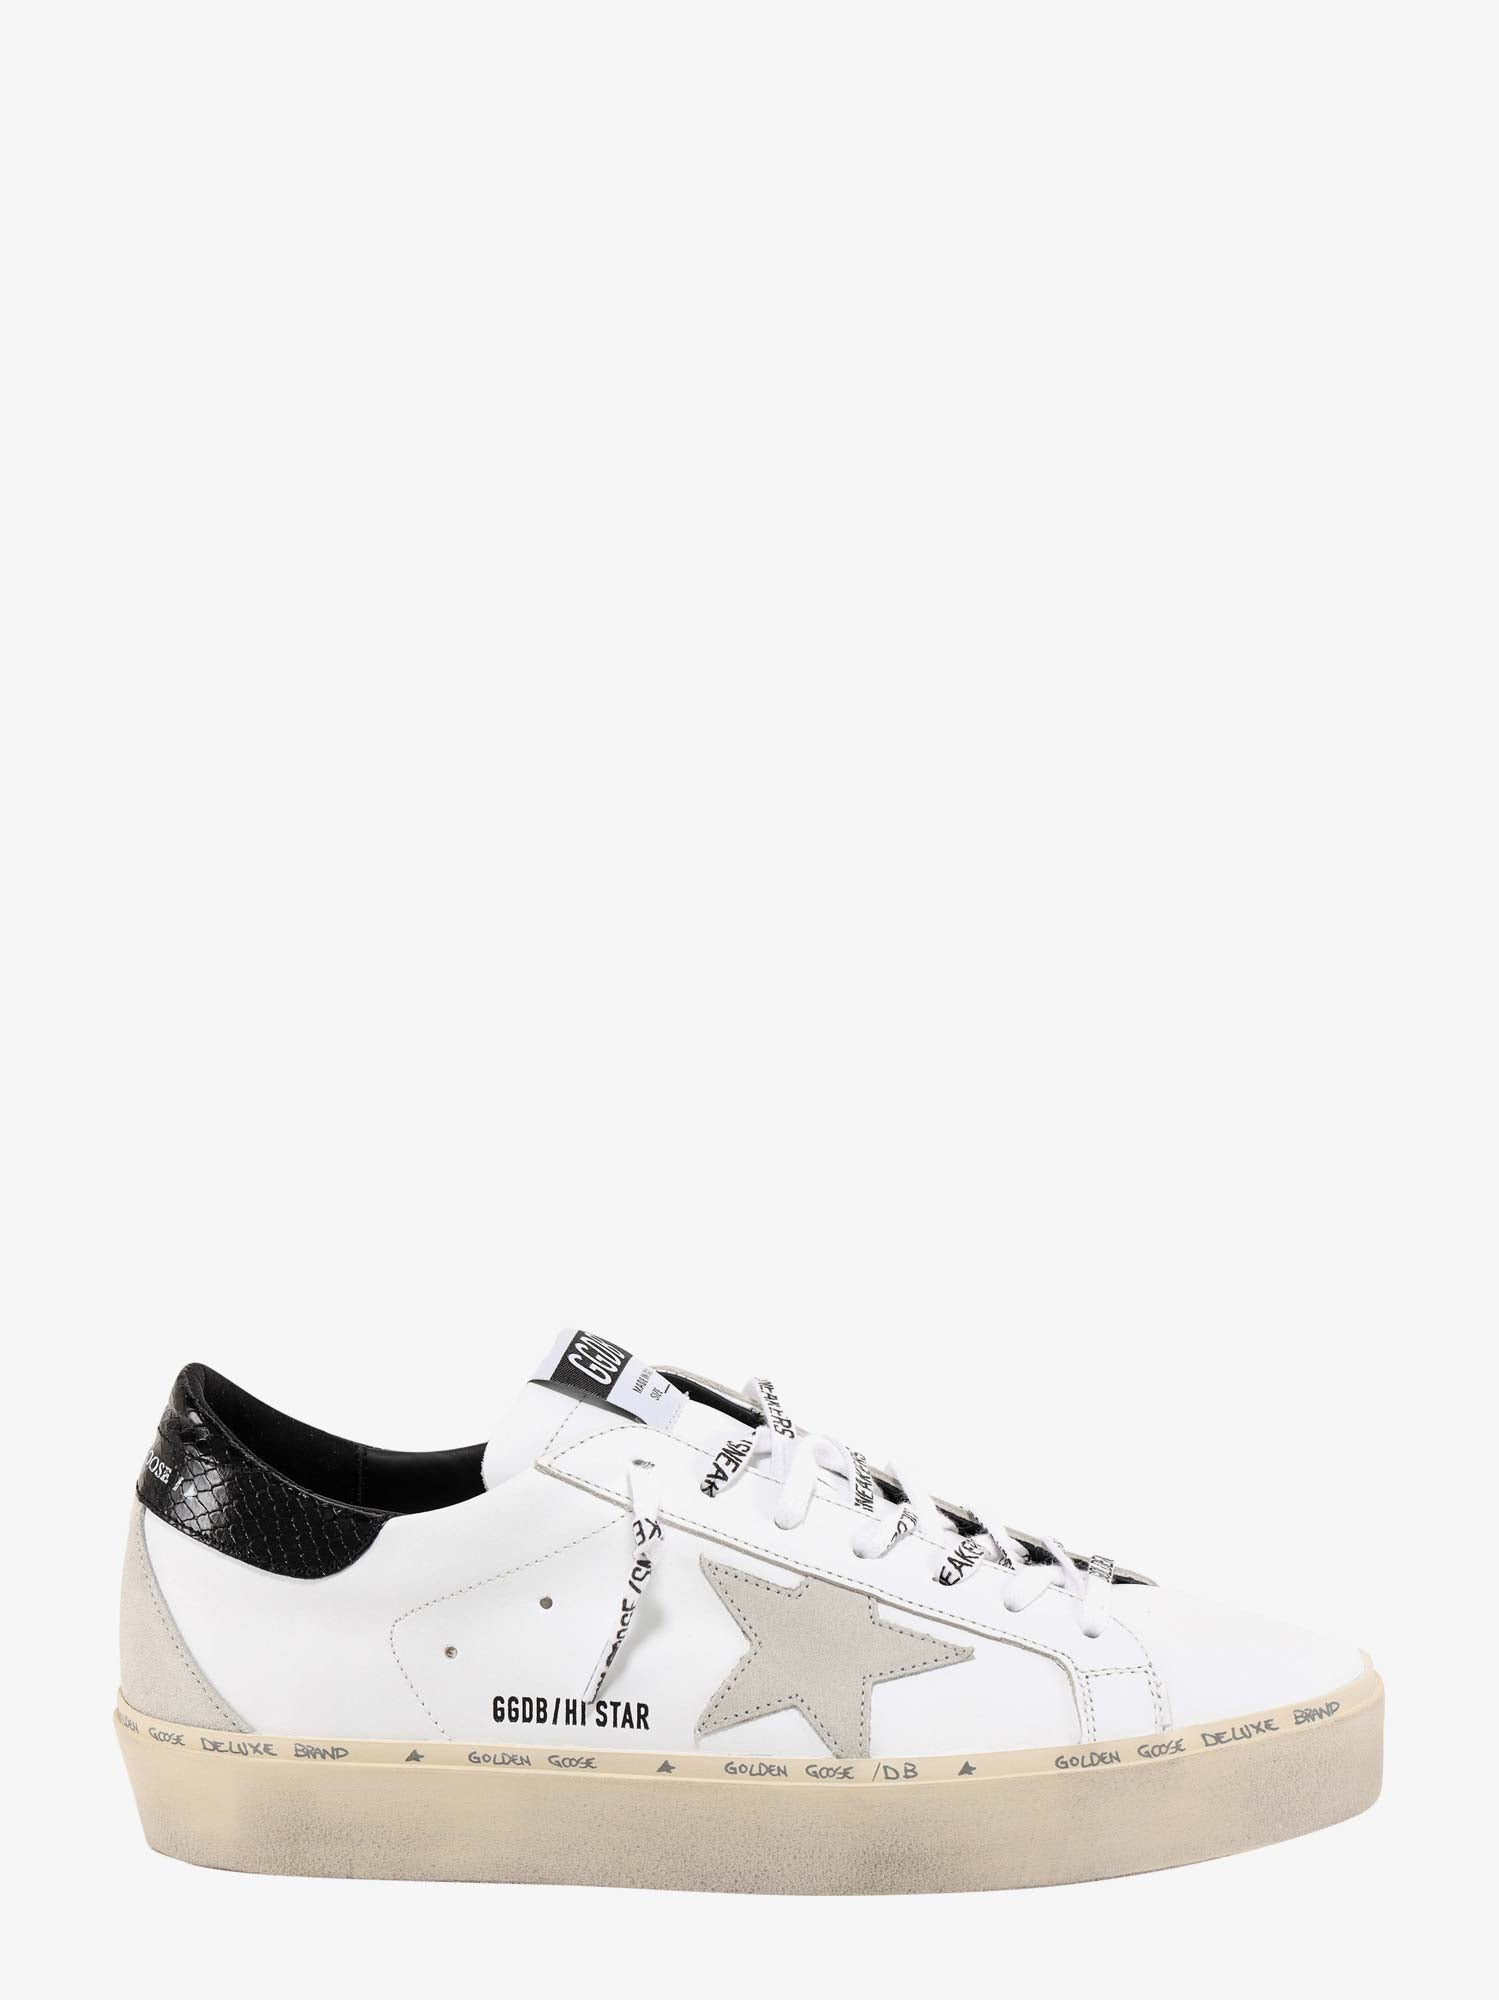 Golden Goose Leathers HI STAR